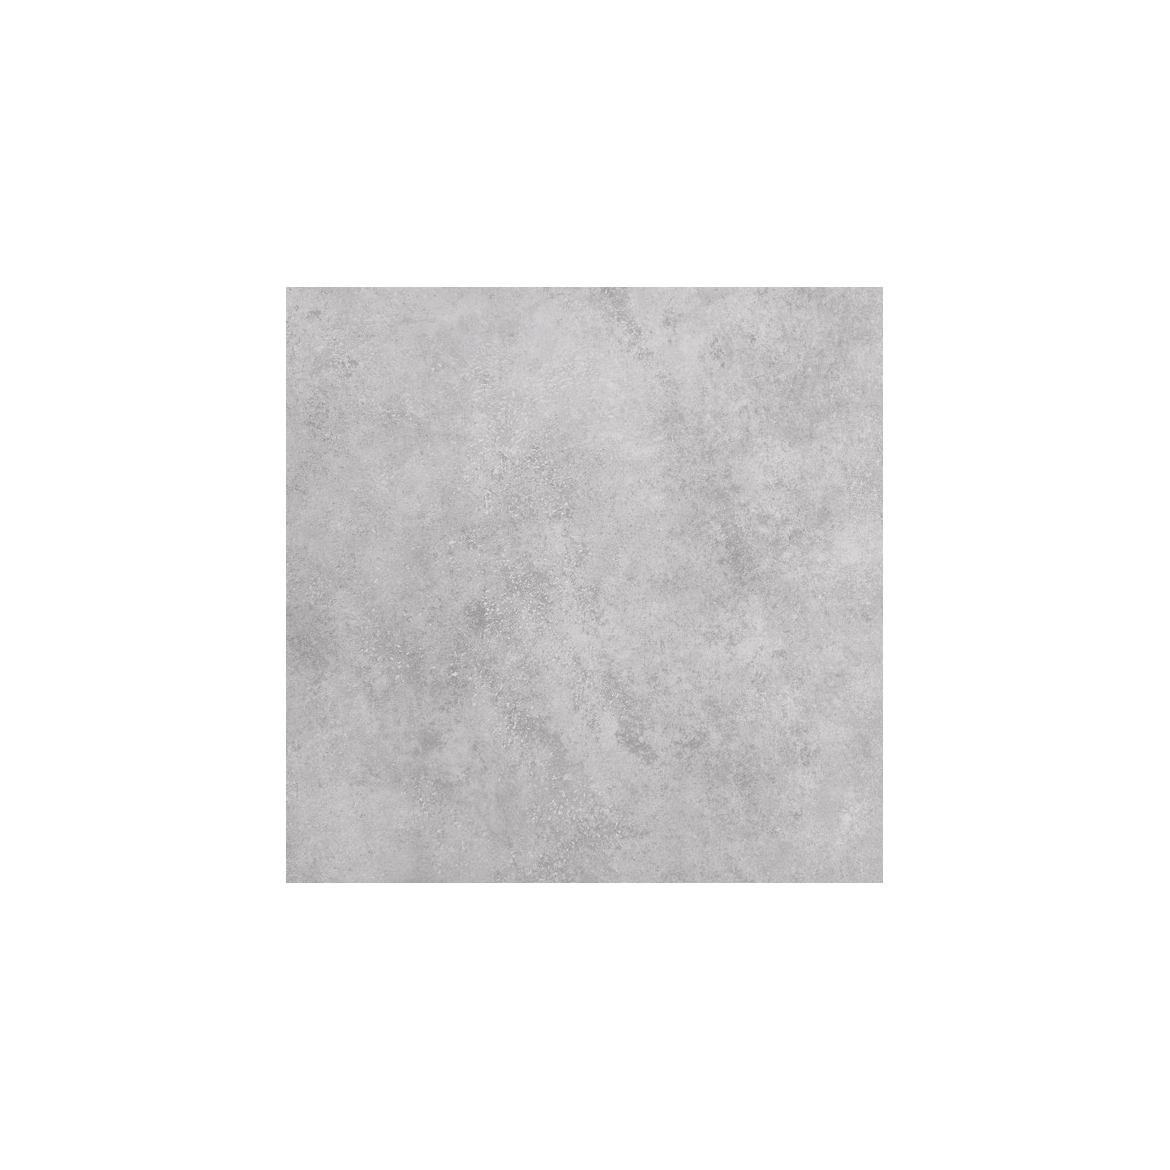 https://cerdesign.pl/2222-large_default/p7631-nord-ceram-gent-grey-60x60-y-get331.jpg